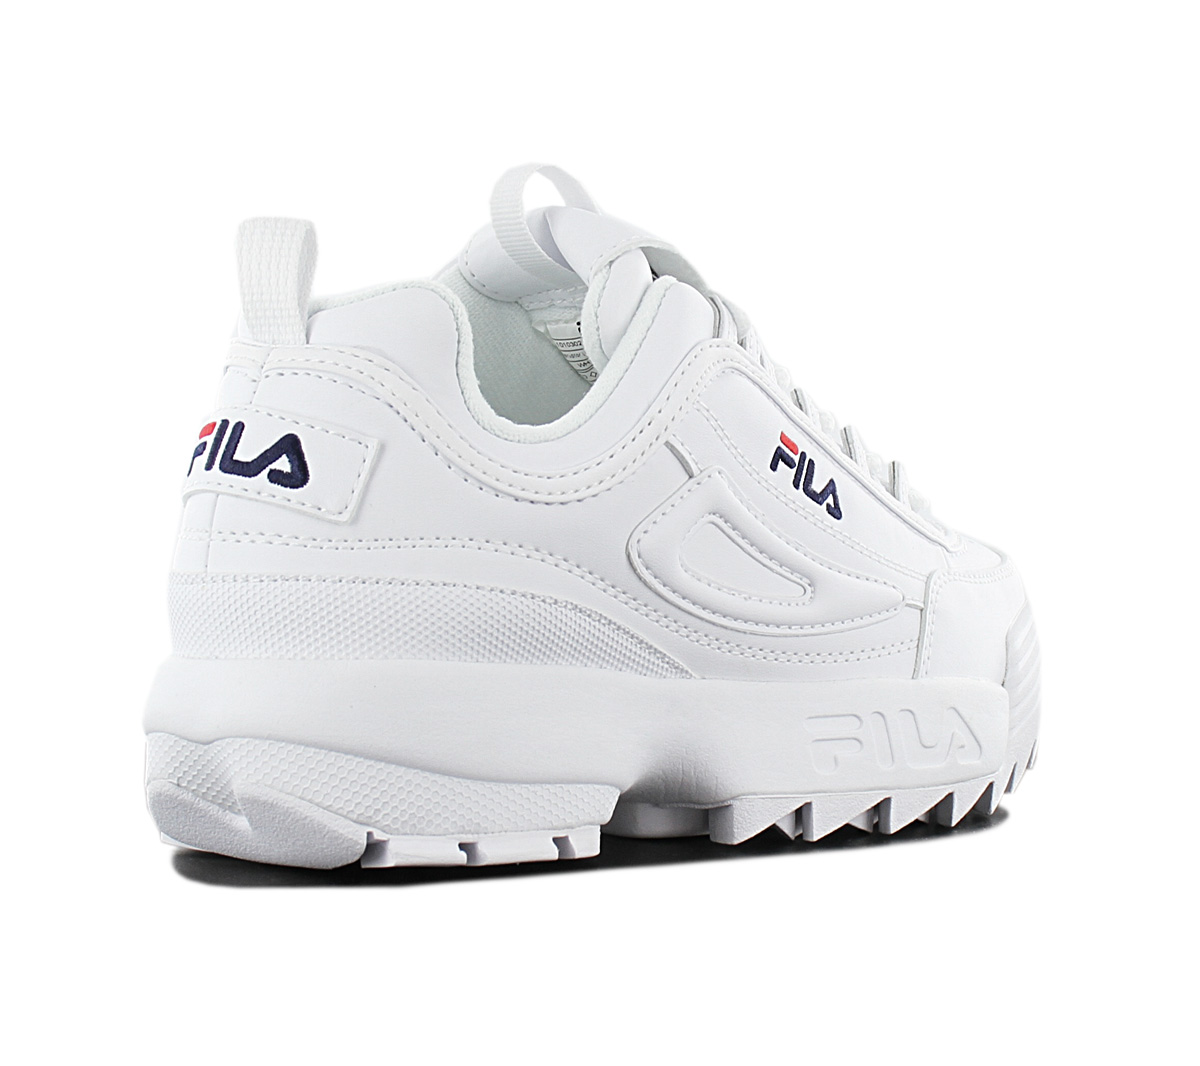 Details about NEW FILA Disruptor Low W 1010302.1FG Women`s Shoes Trainers Sneakers SALE